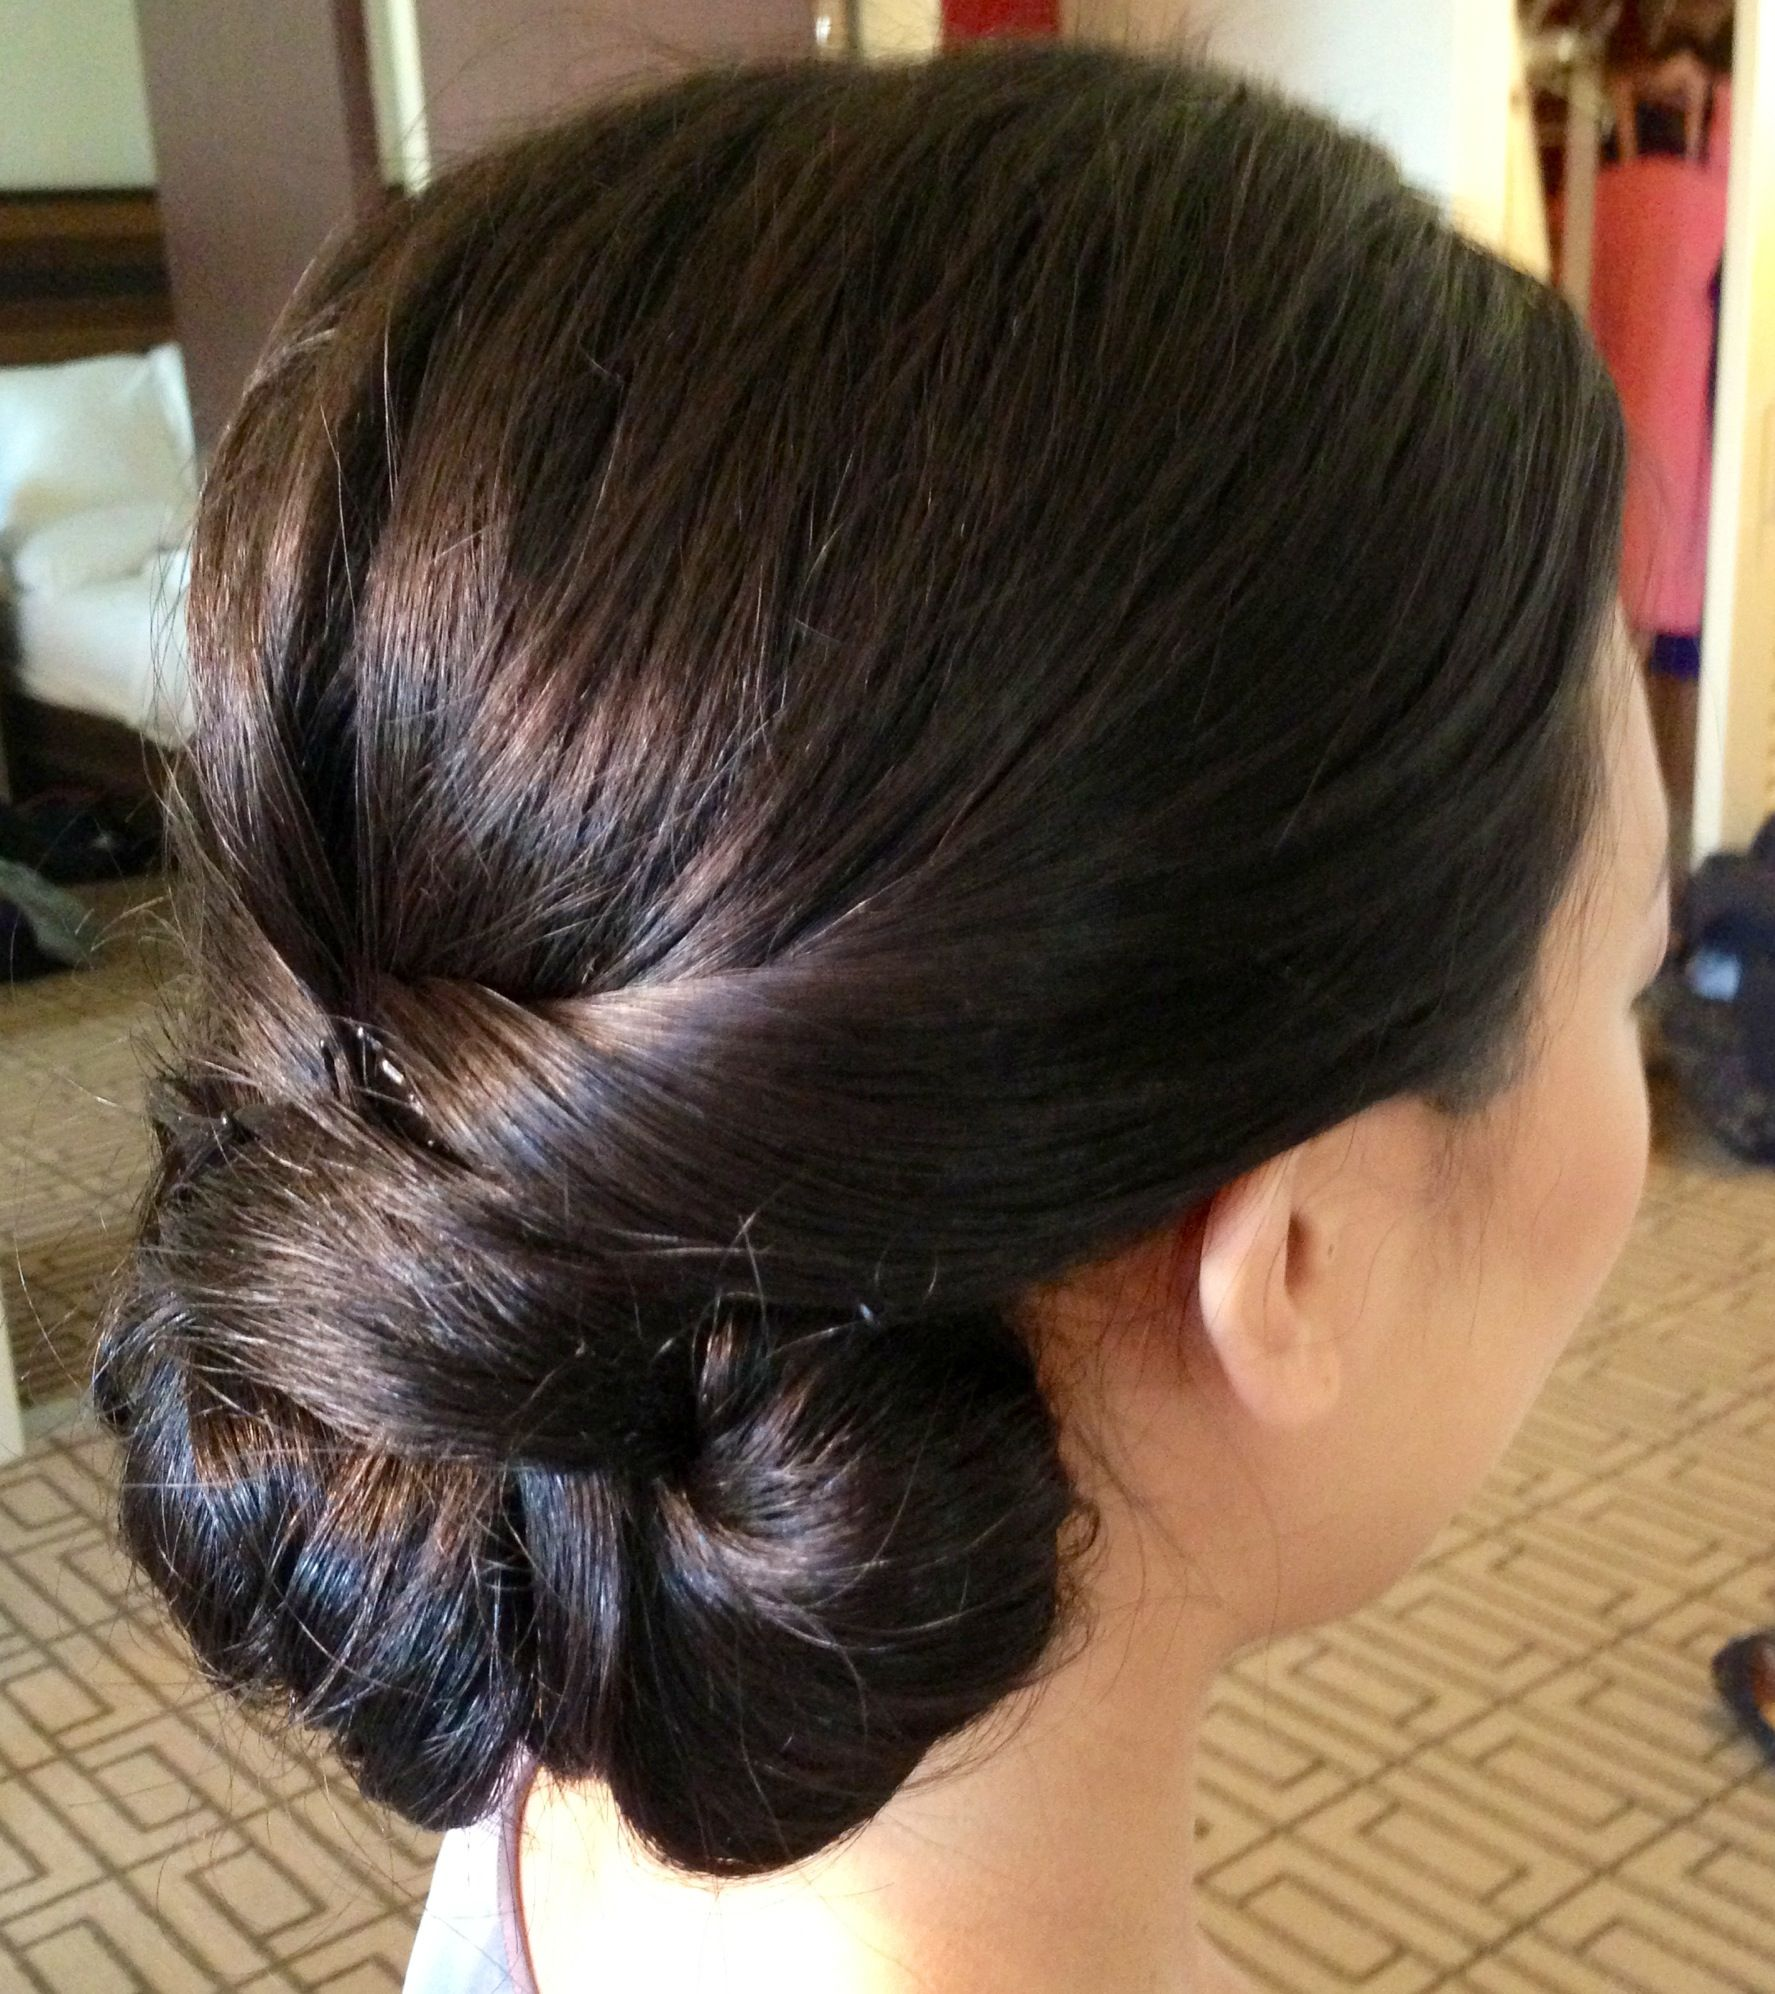 Asian Wedding Hairstyle: Wedding Updo, Wedding Hair, Updo, Classic Updo, Chignon